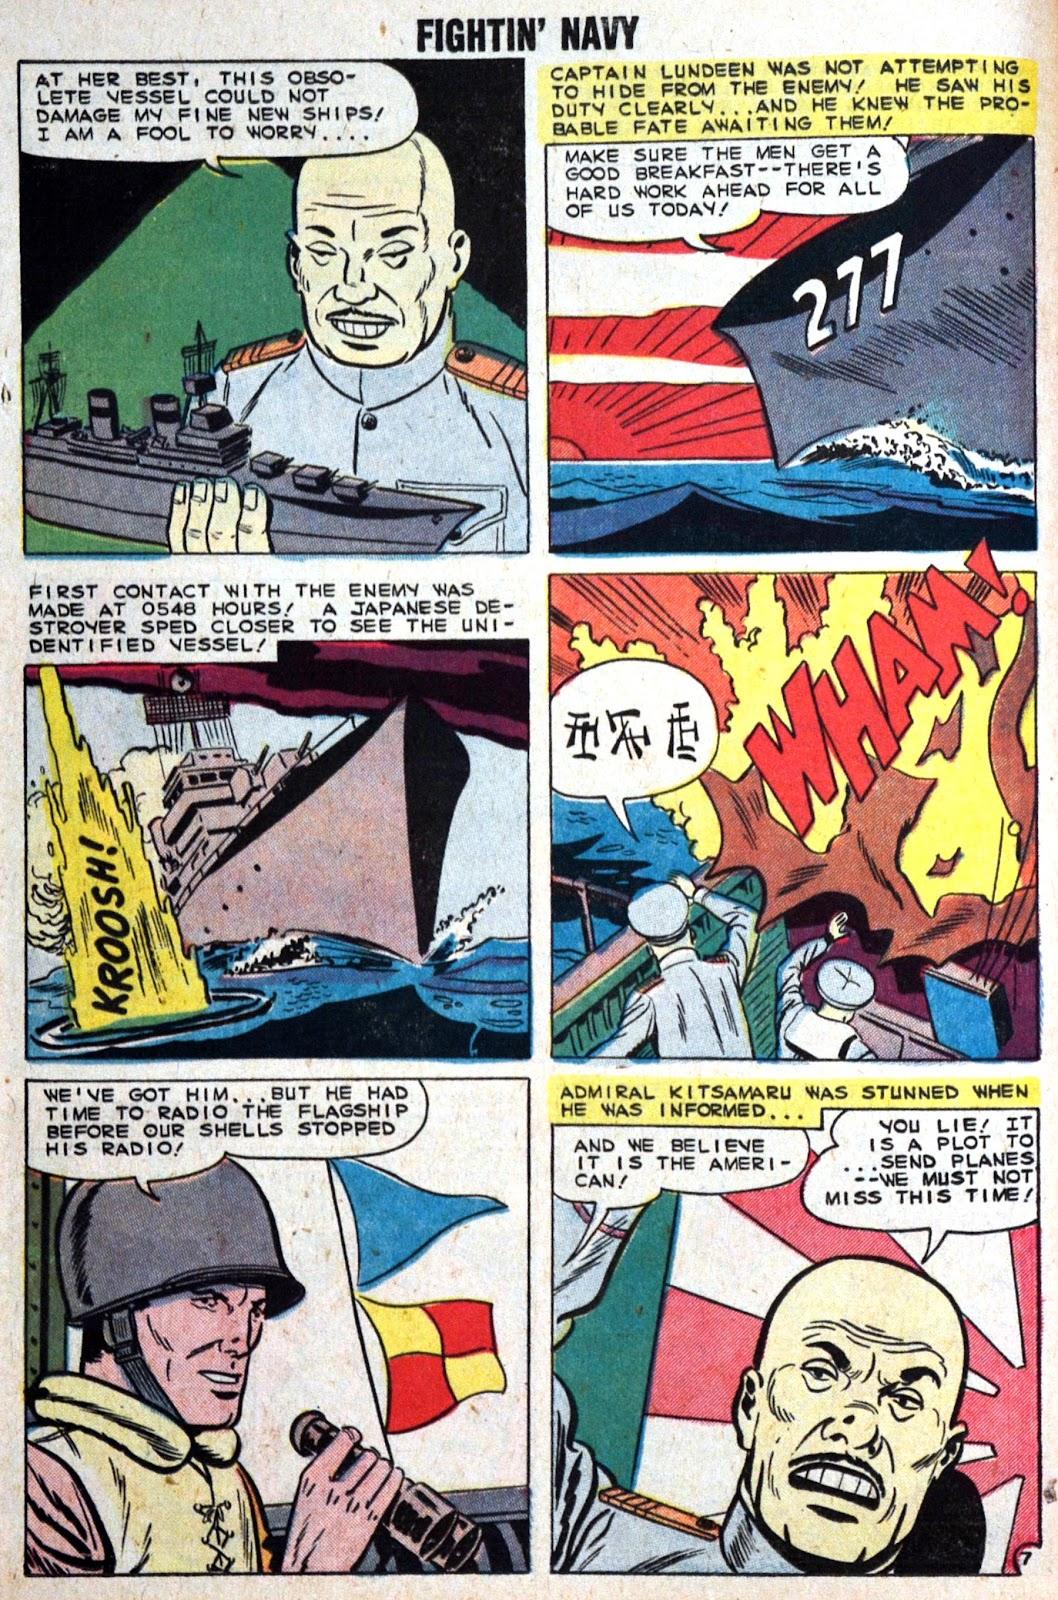 Read online Fightin' Navy comic -  Issue #89 - 26